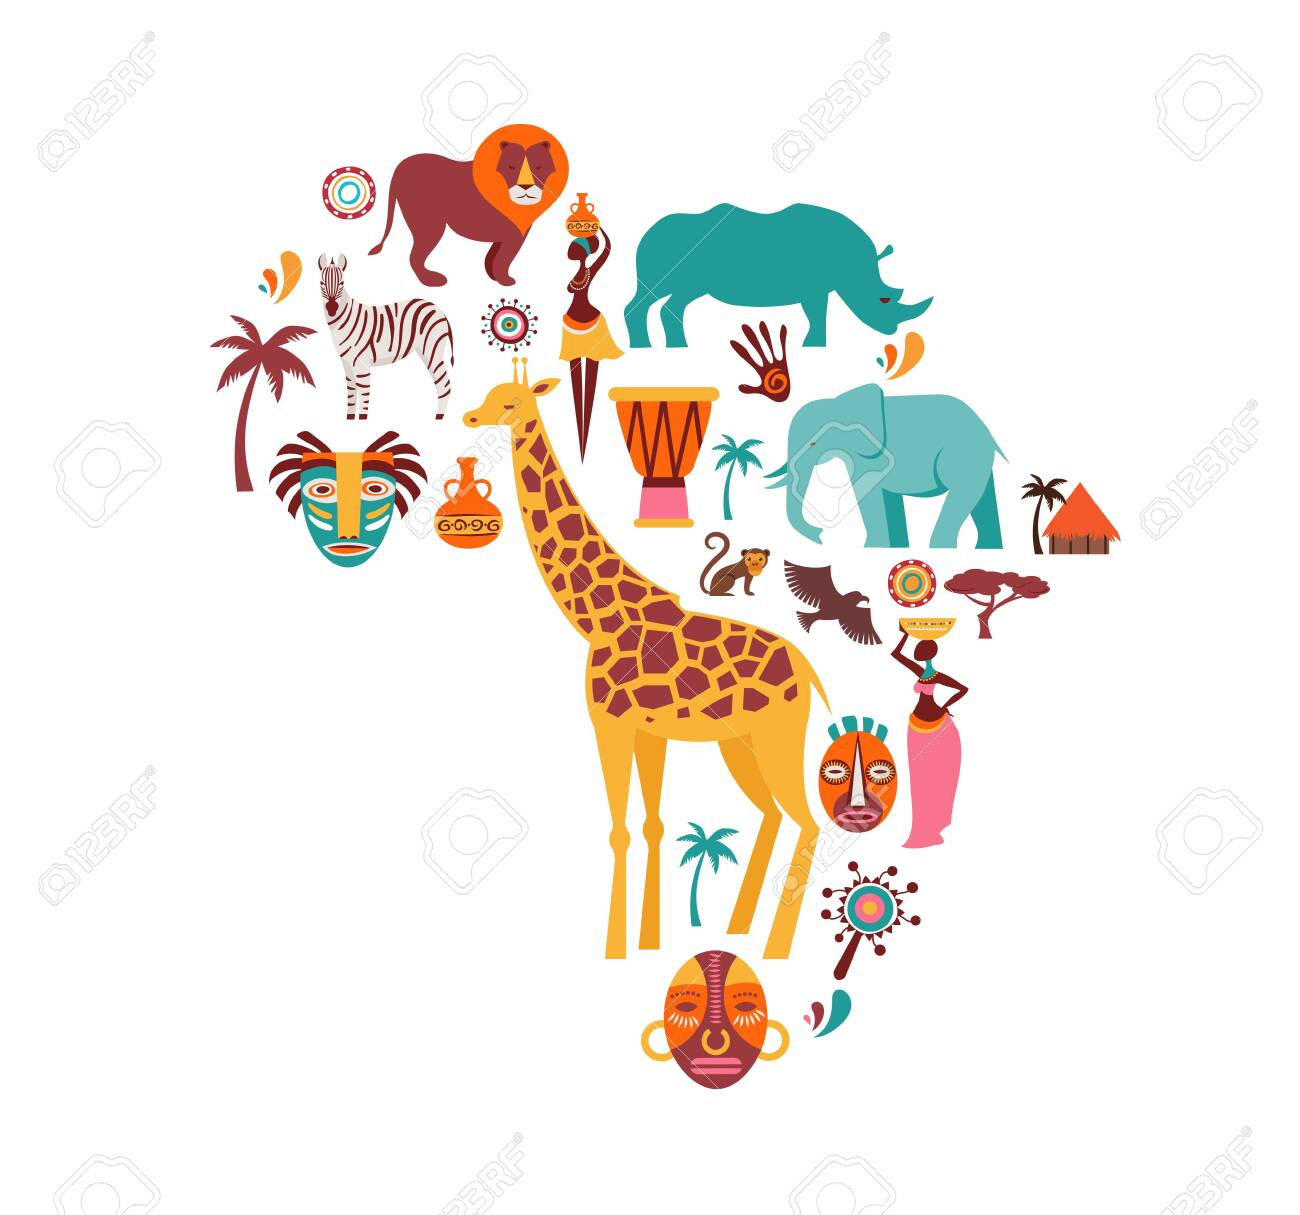 Africa map illustrated with animals icons, tribal symbols. Vector design - 128762775